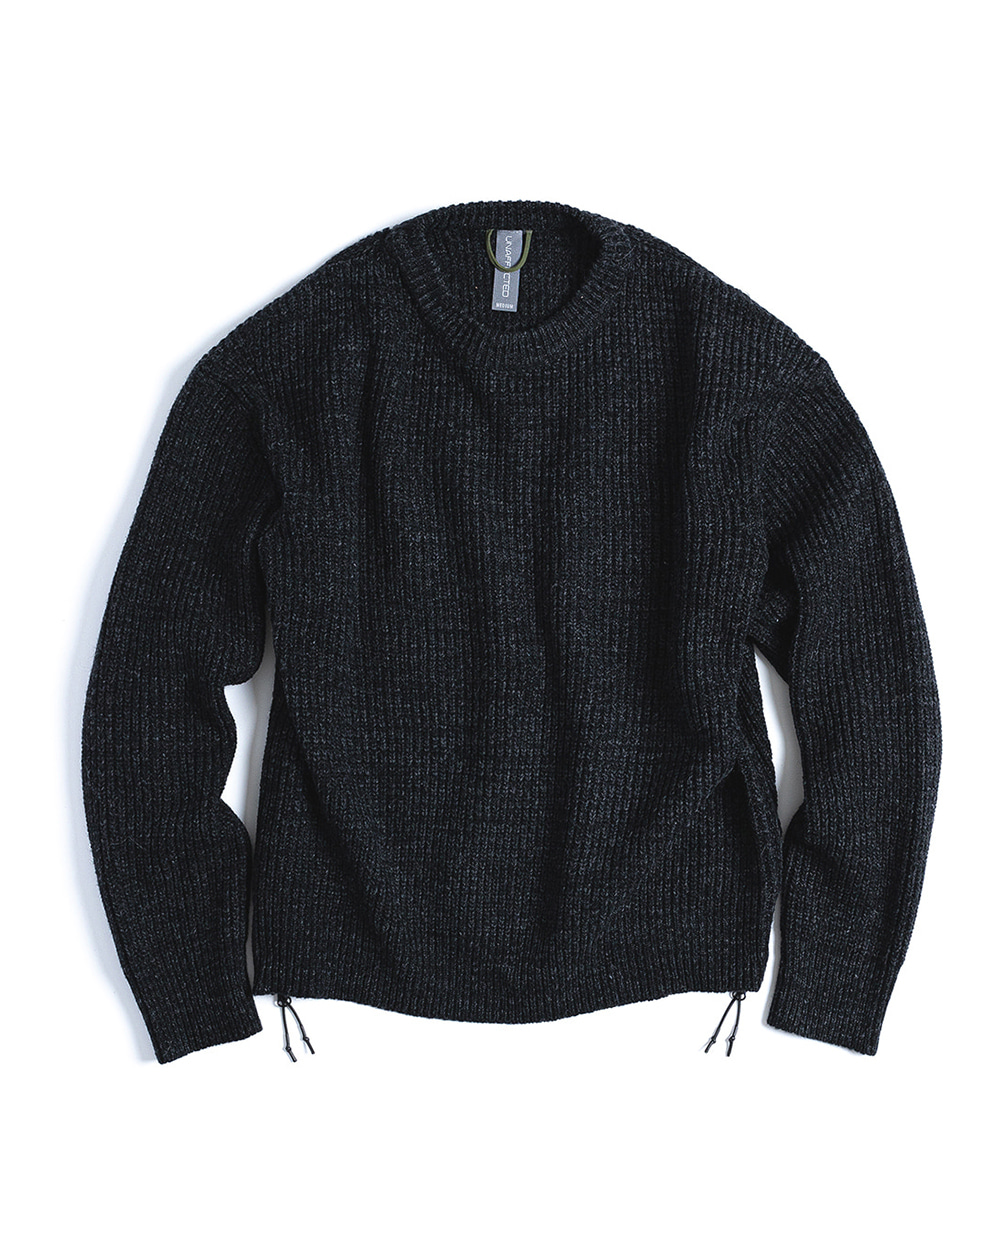 언어펙티드 OVERSIZED CREWNECK KNIT (Black Melange)